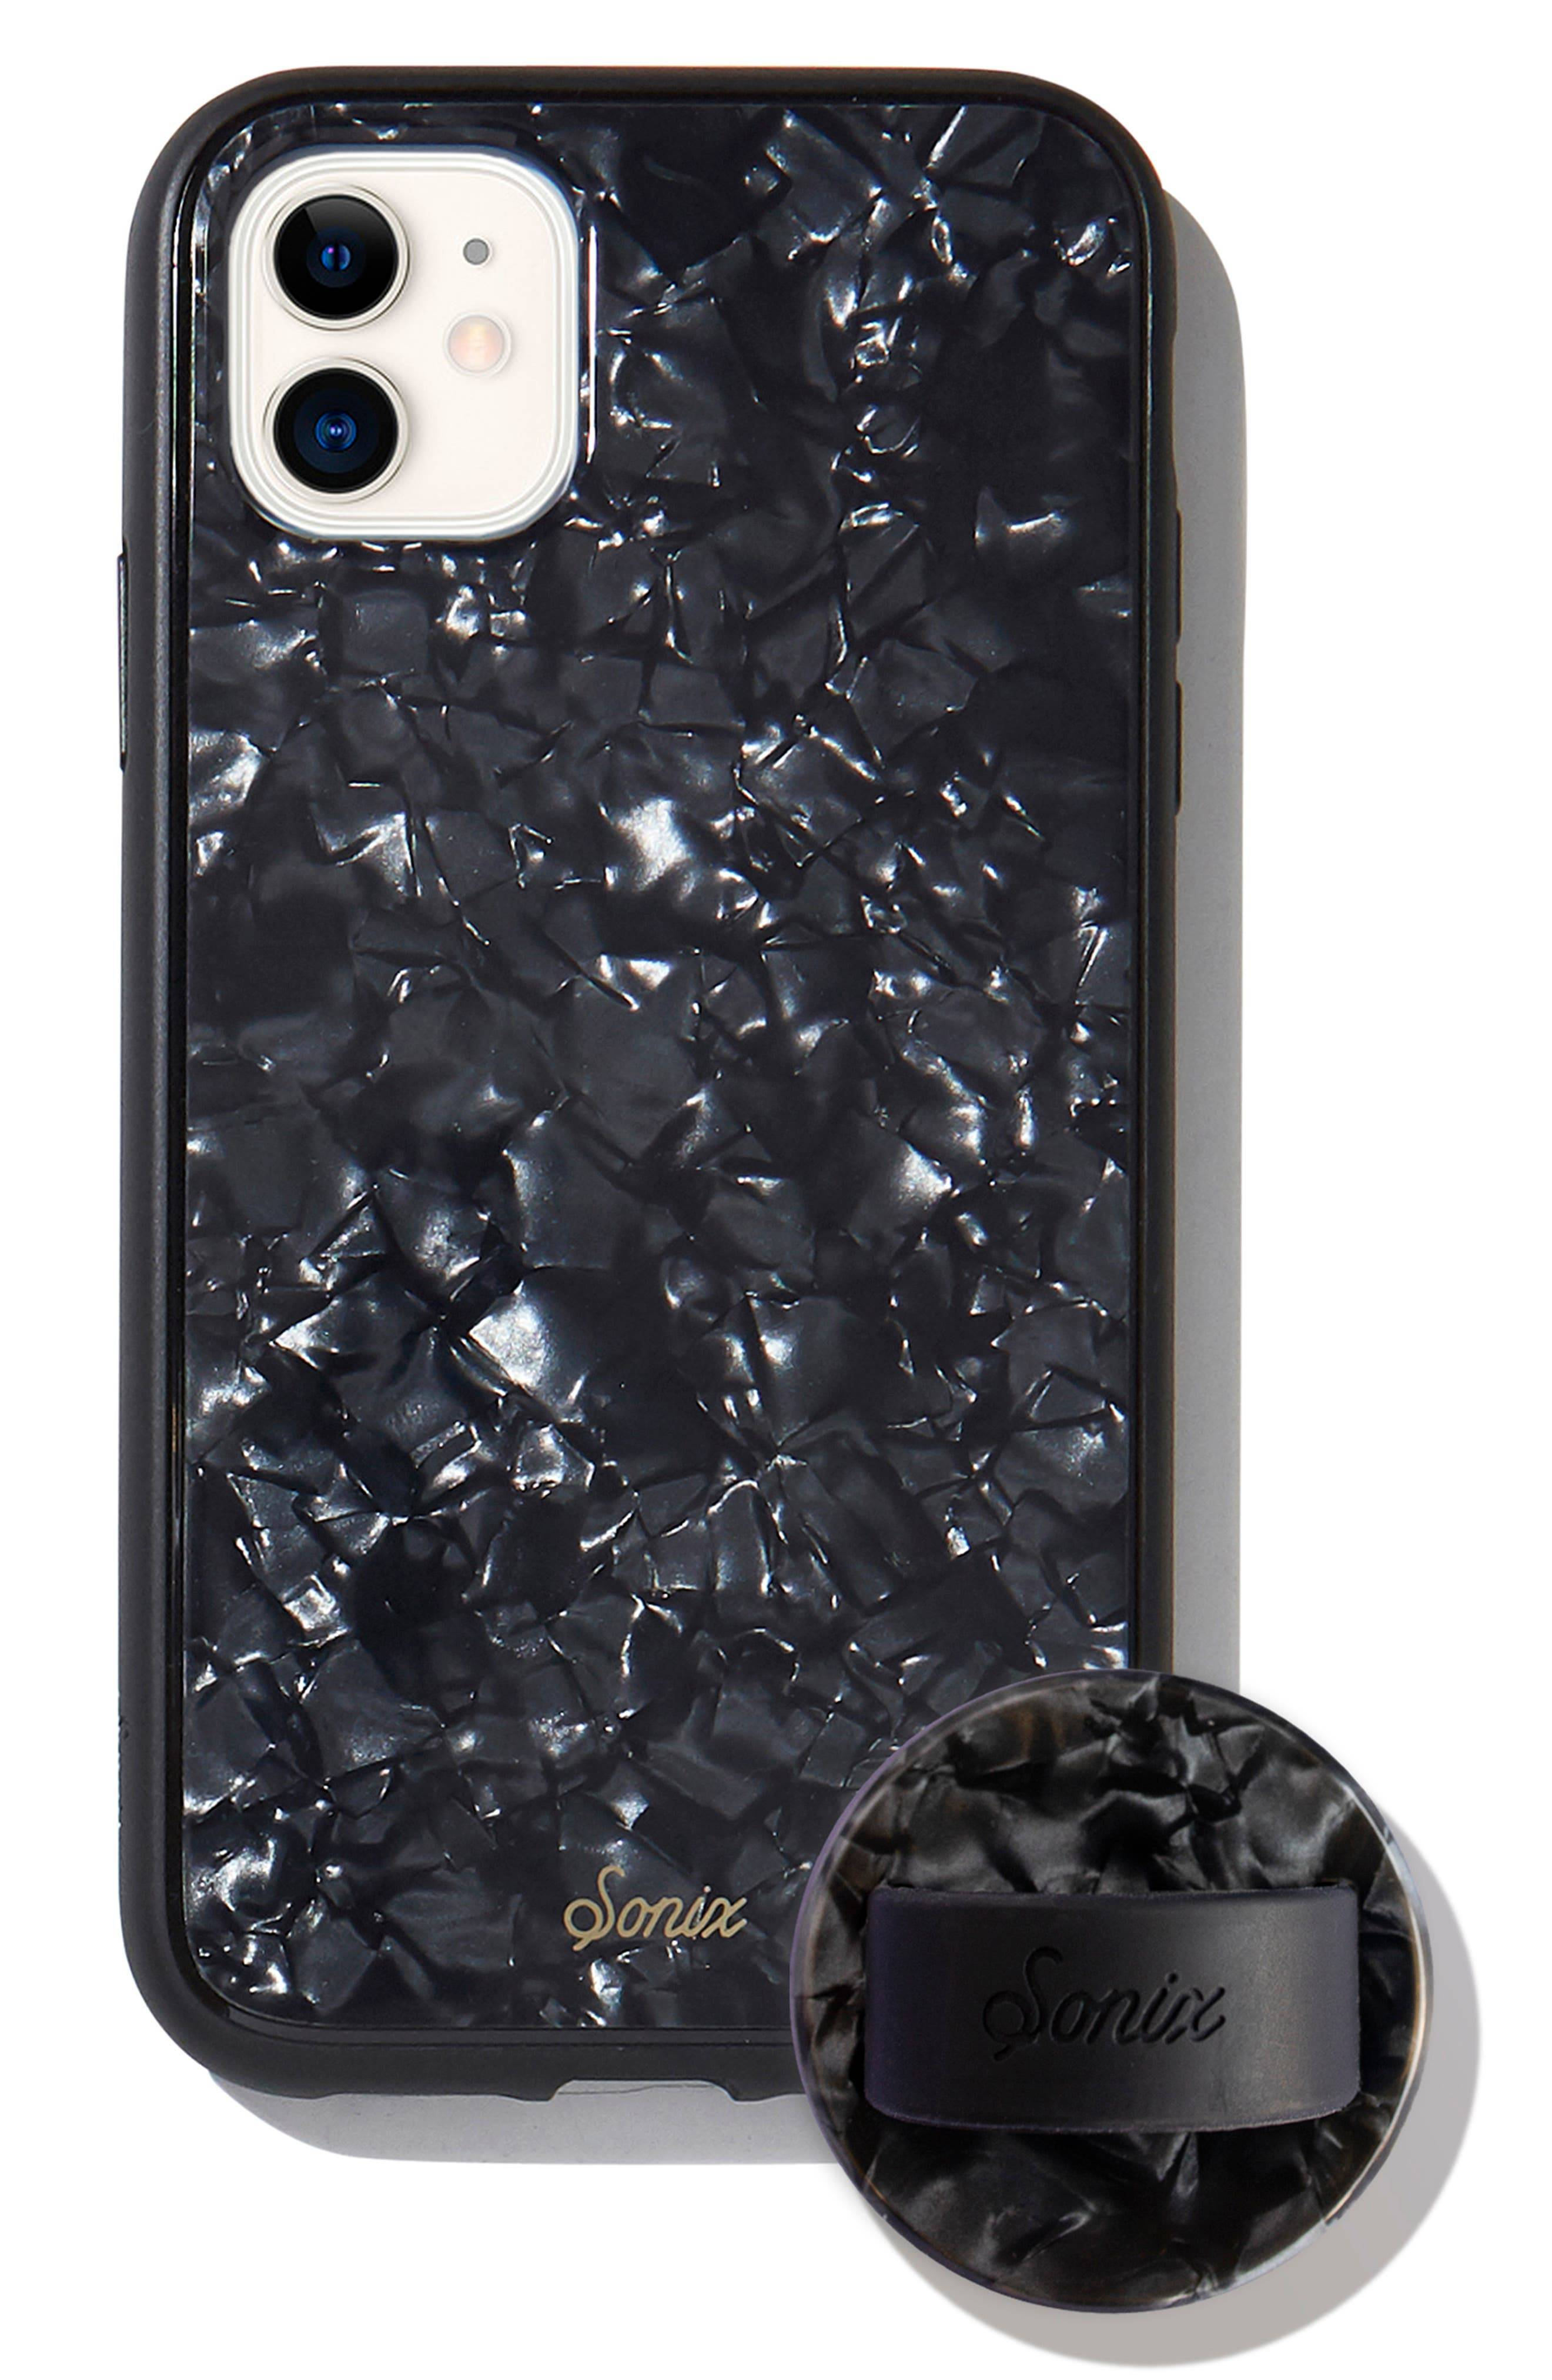 Sonix Black Tort Iphone 11 Case & Slide Silicone Phone Ring - Black